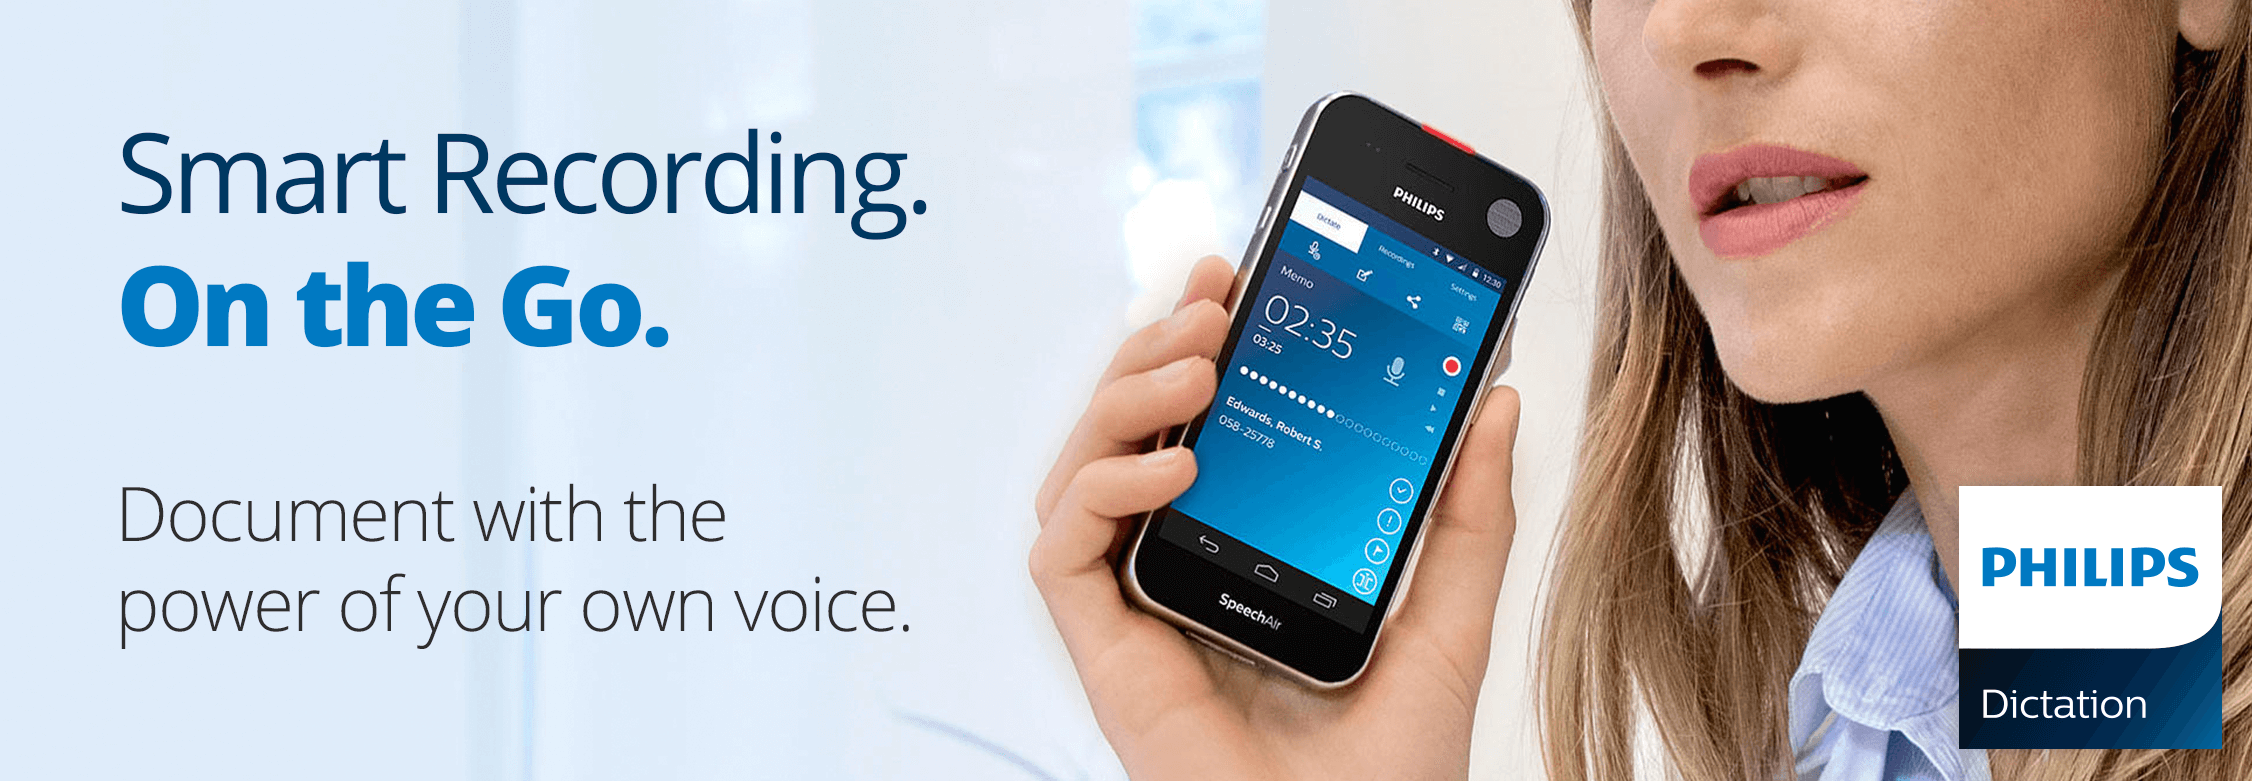 Smart Recording. On the Go. Document with thepower of your own voice. Philips Dictation.